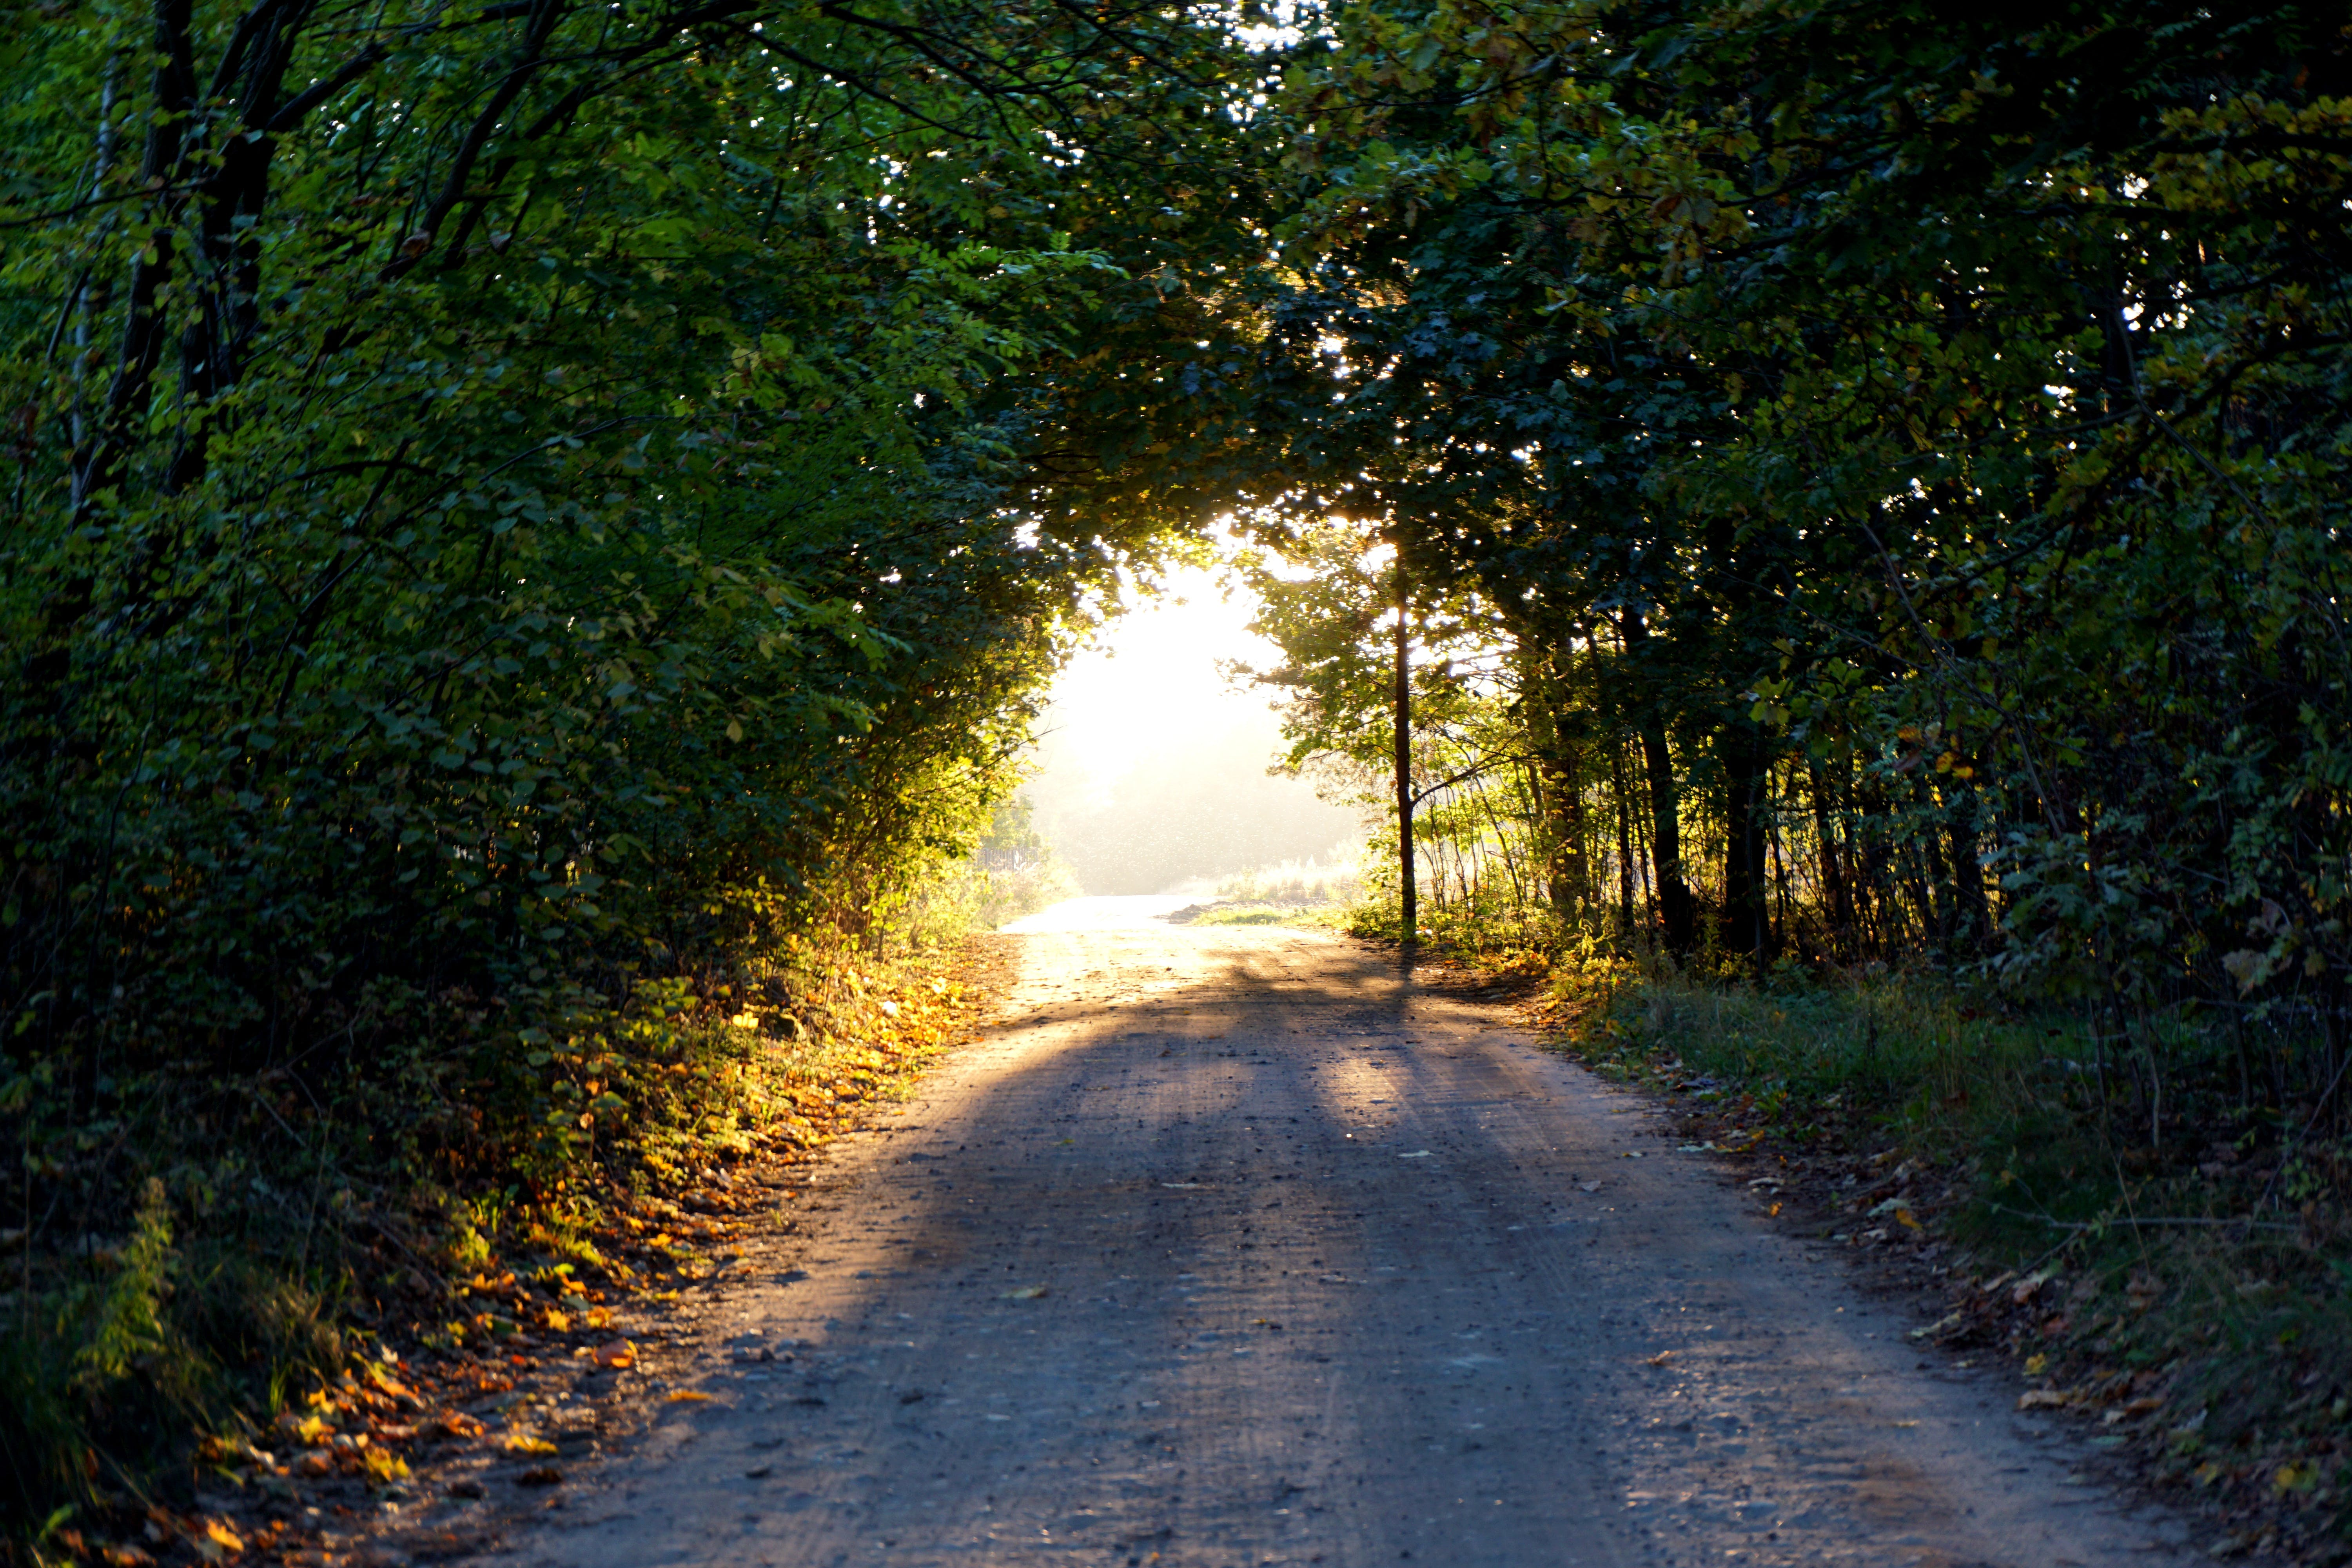 Free stock photo of road, nature, sun, forest